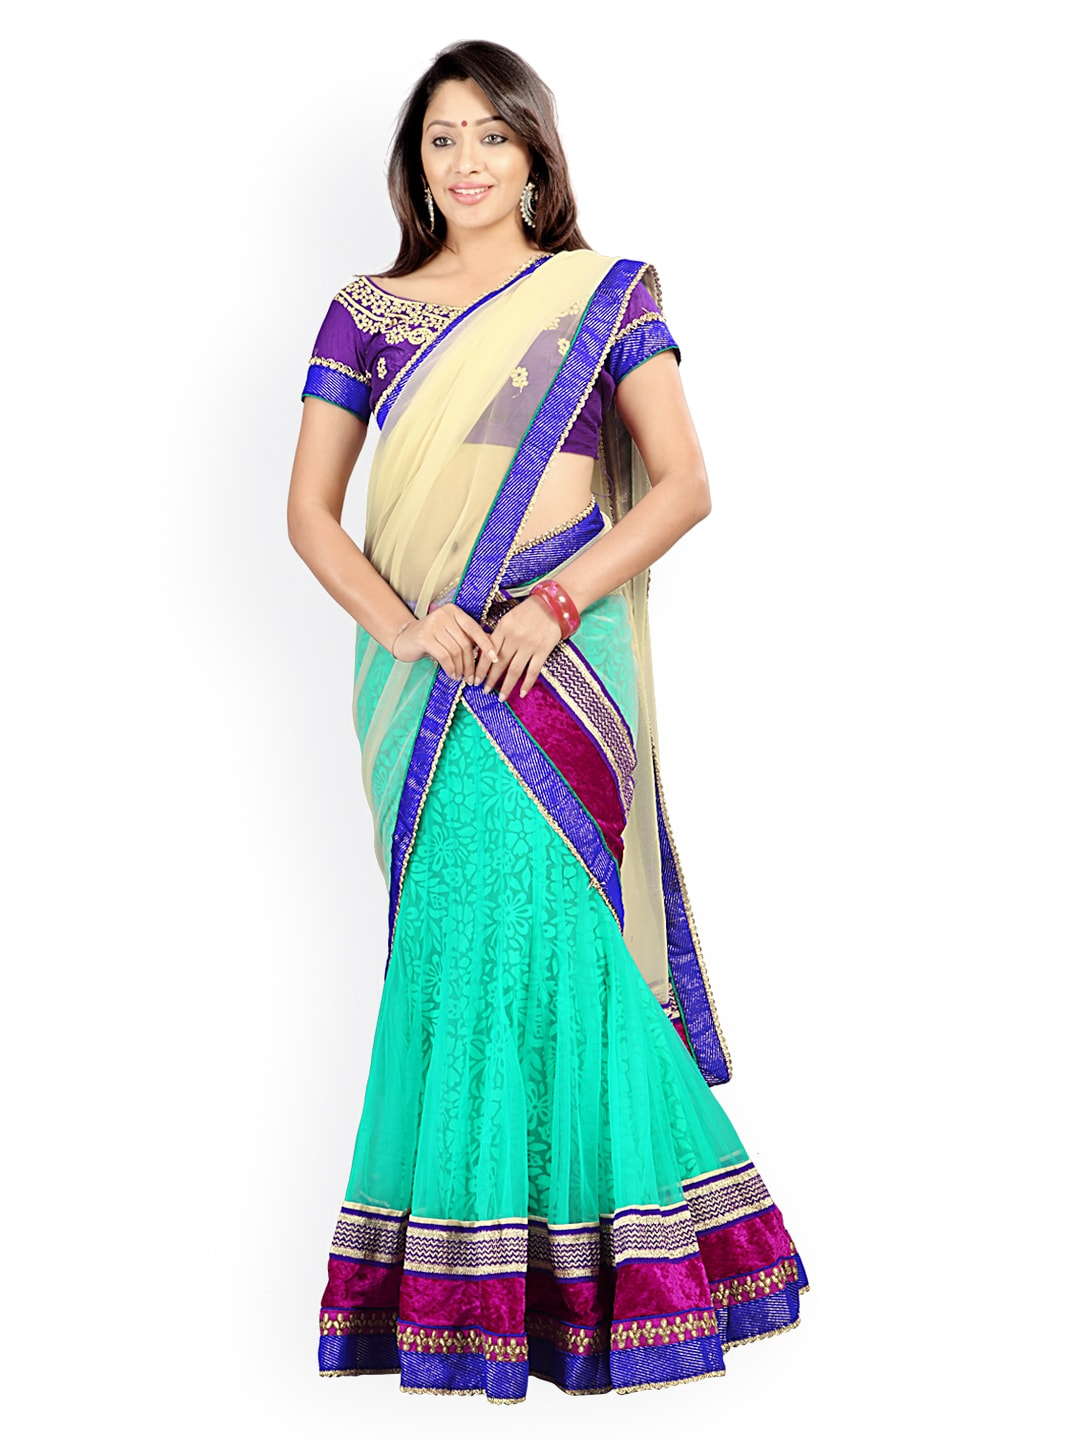 Florence Green & Purple Semi-Stitched Brasso Net Lehenga Choli with Dupatta